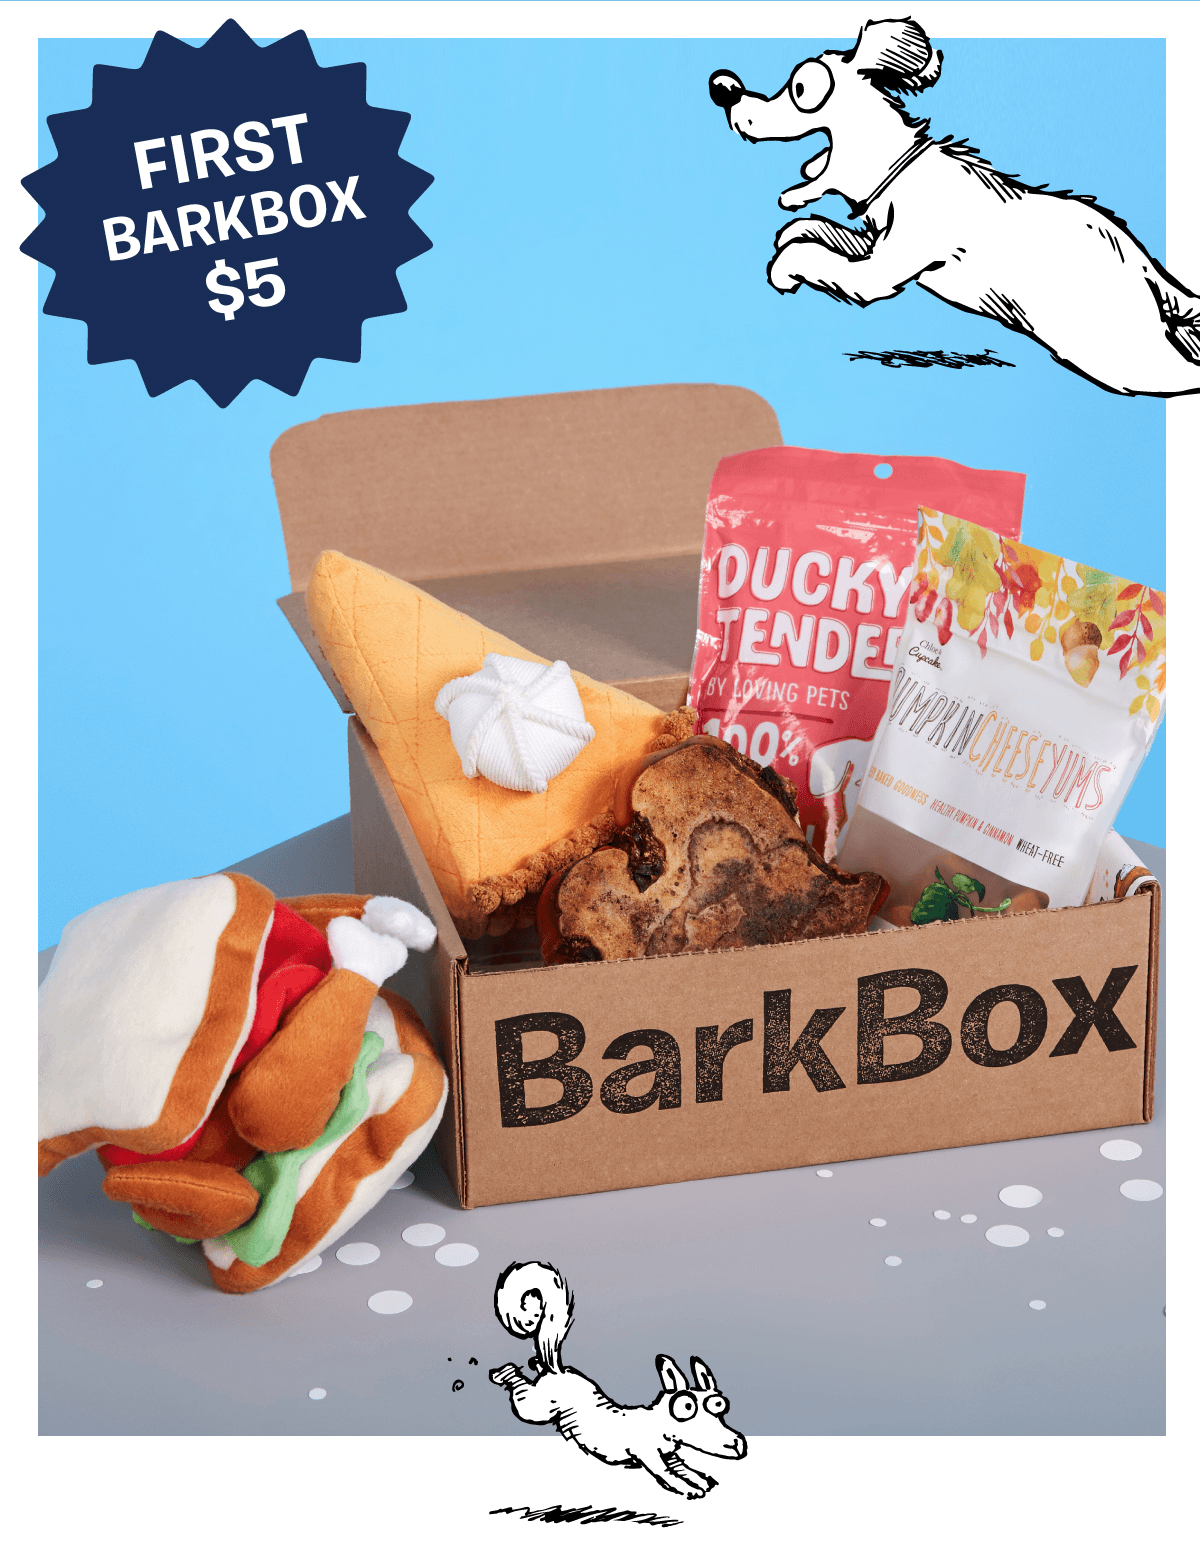 Barkbox Cyber Monday Deal: First Box $5 With Subscription!